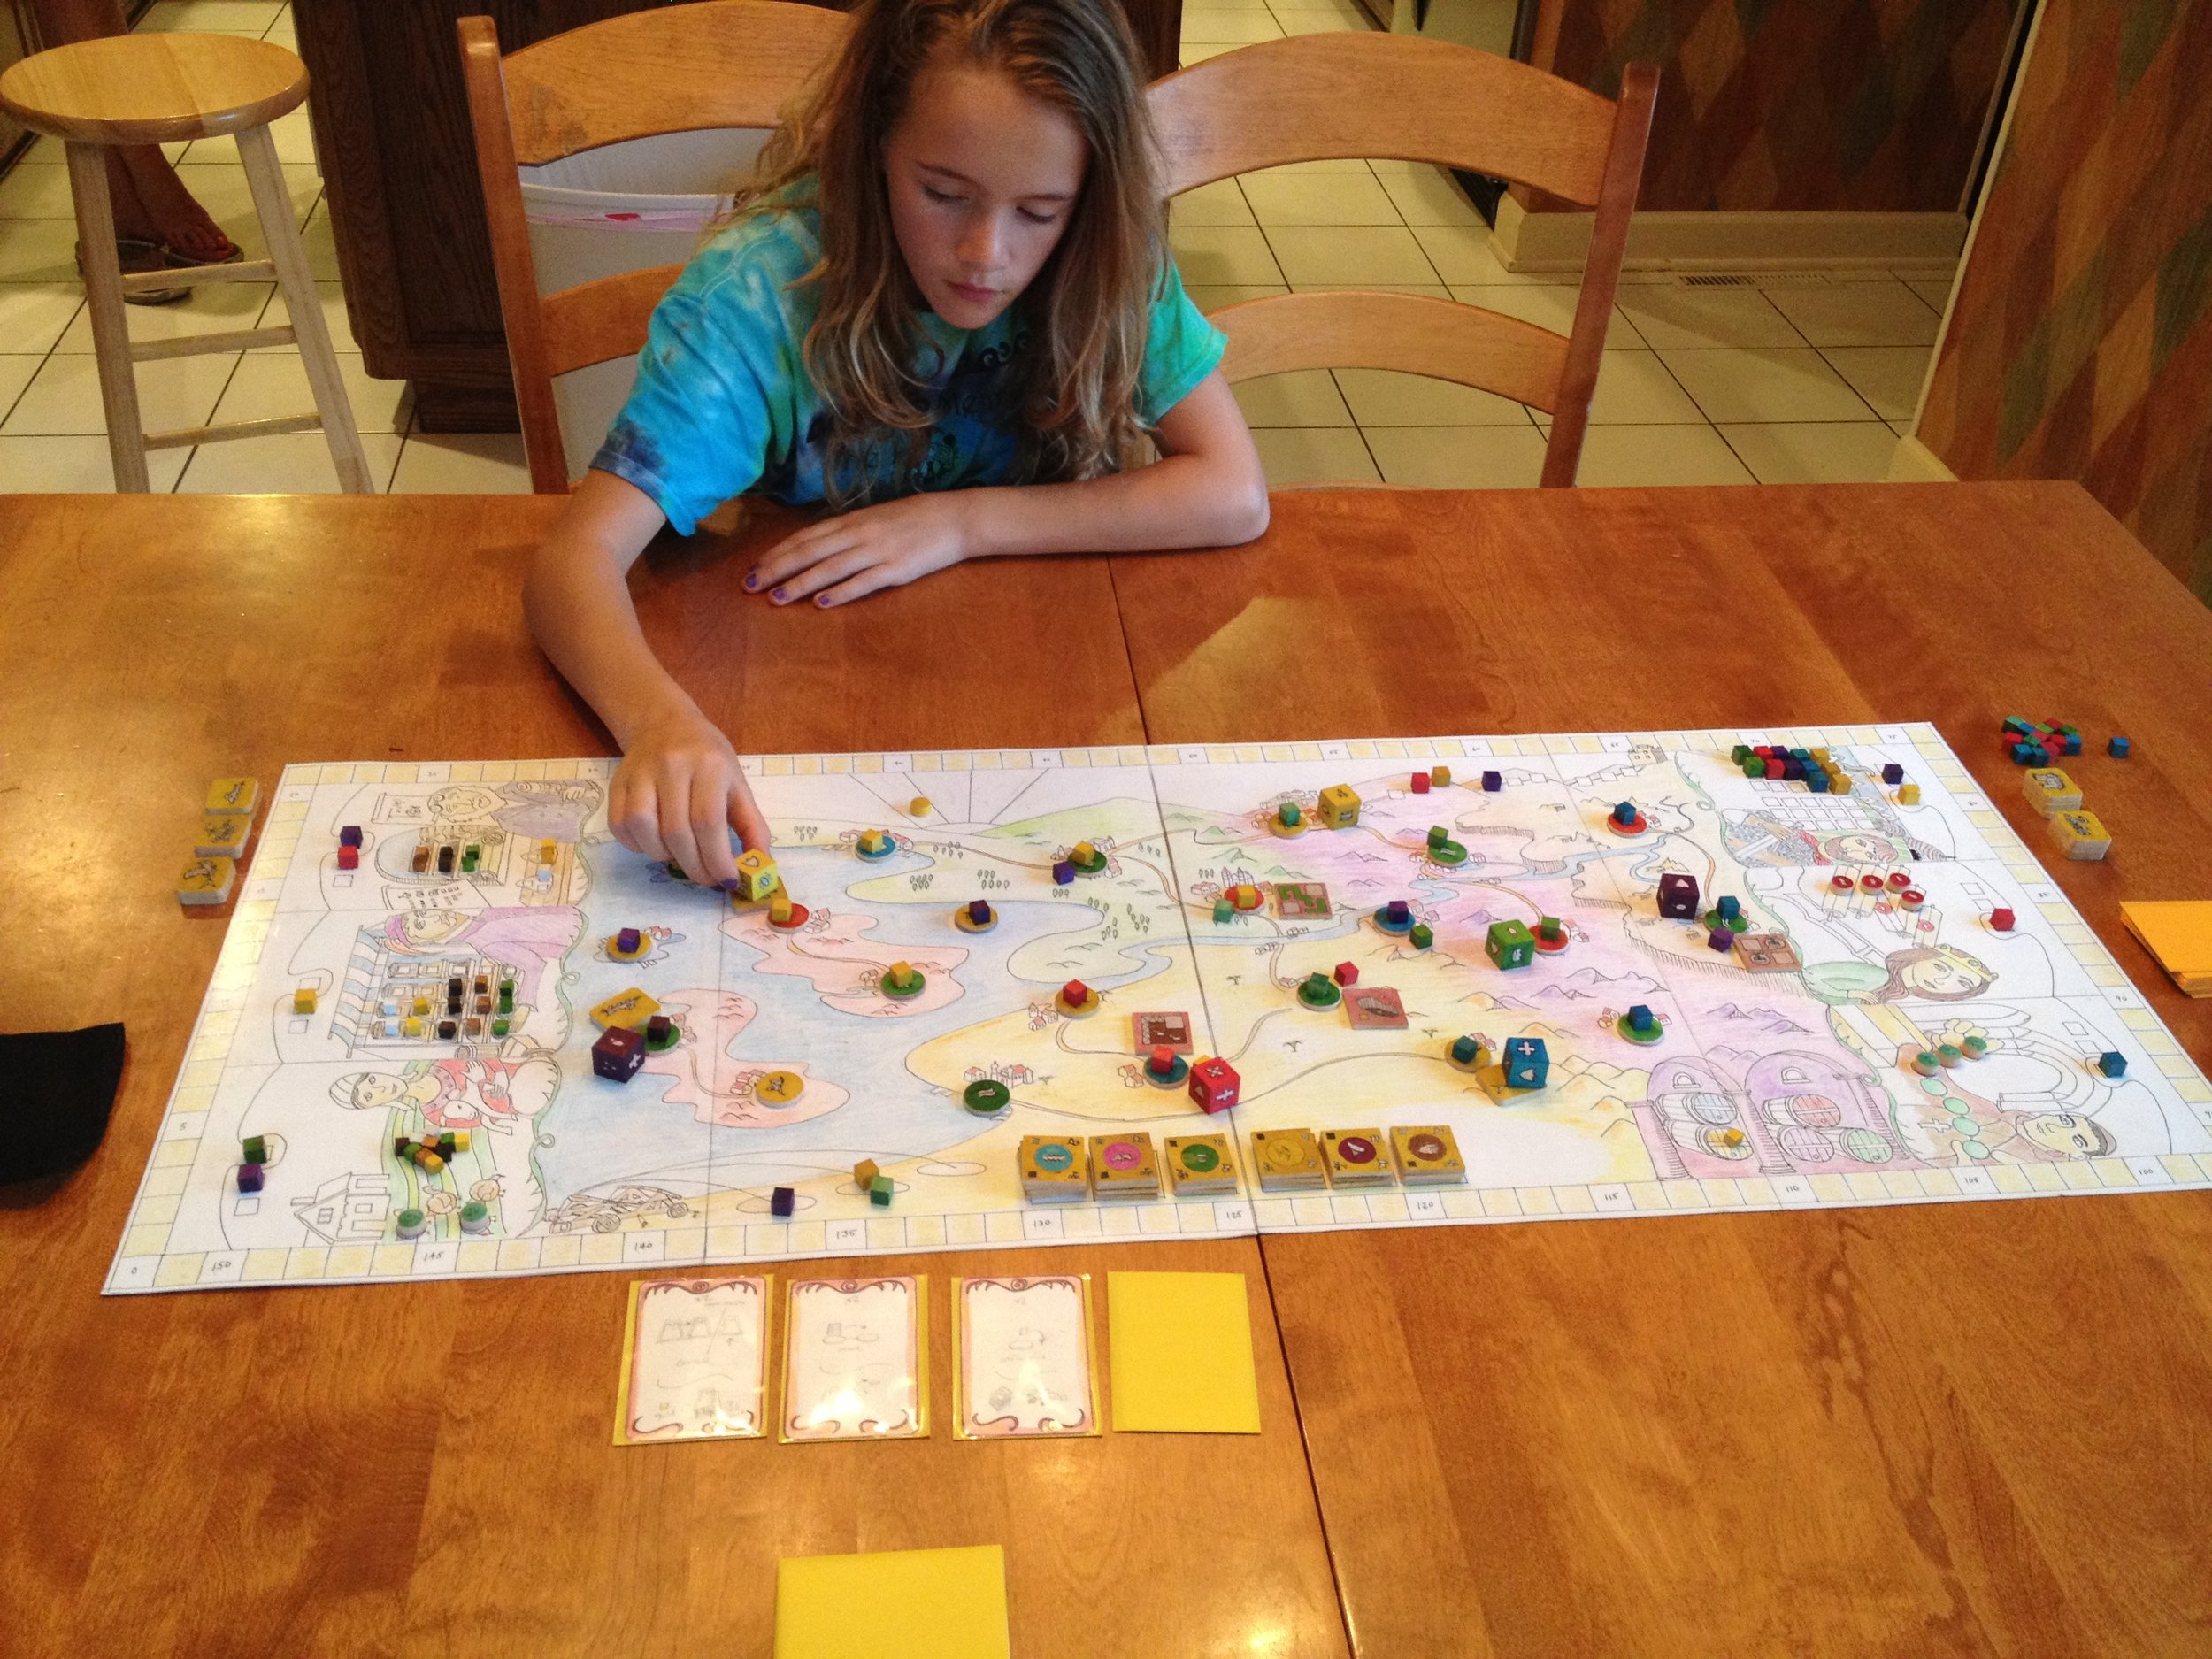 Mark's Daughter playtesting Feudum